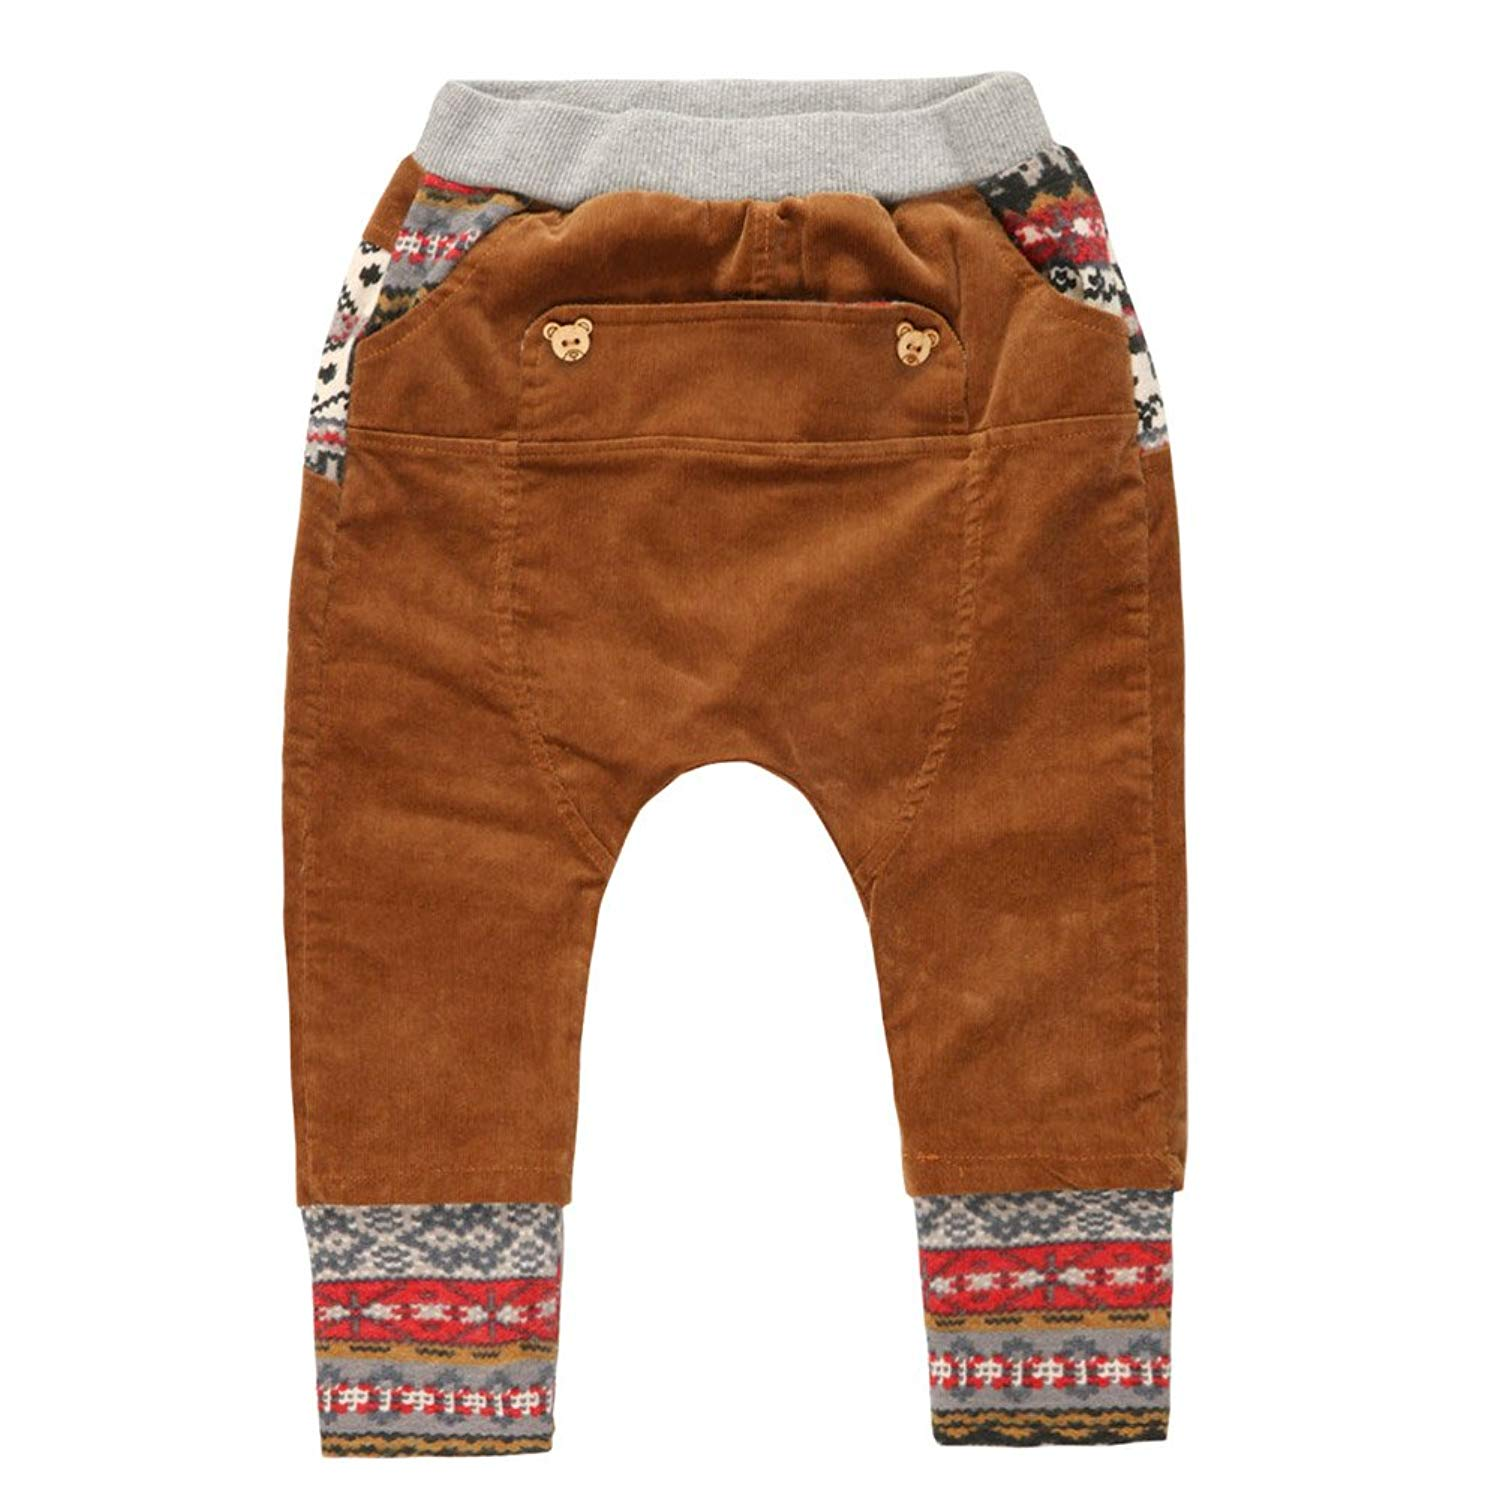 f622b93668 Get Quotations · eTree Boys' Corduroy Cotton Knitting Bottom And Waist  Baggy Collapse Pants